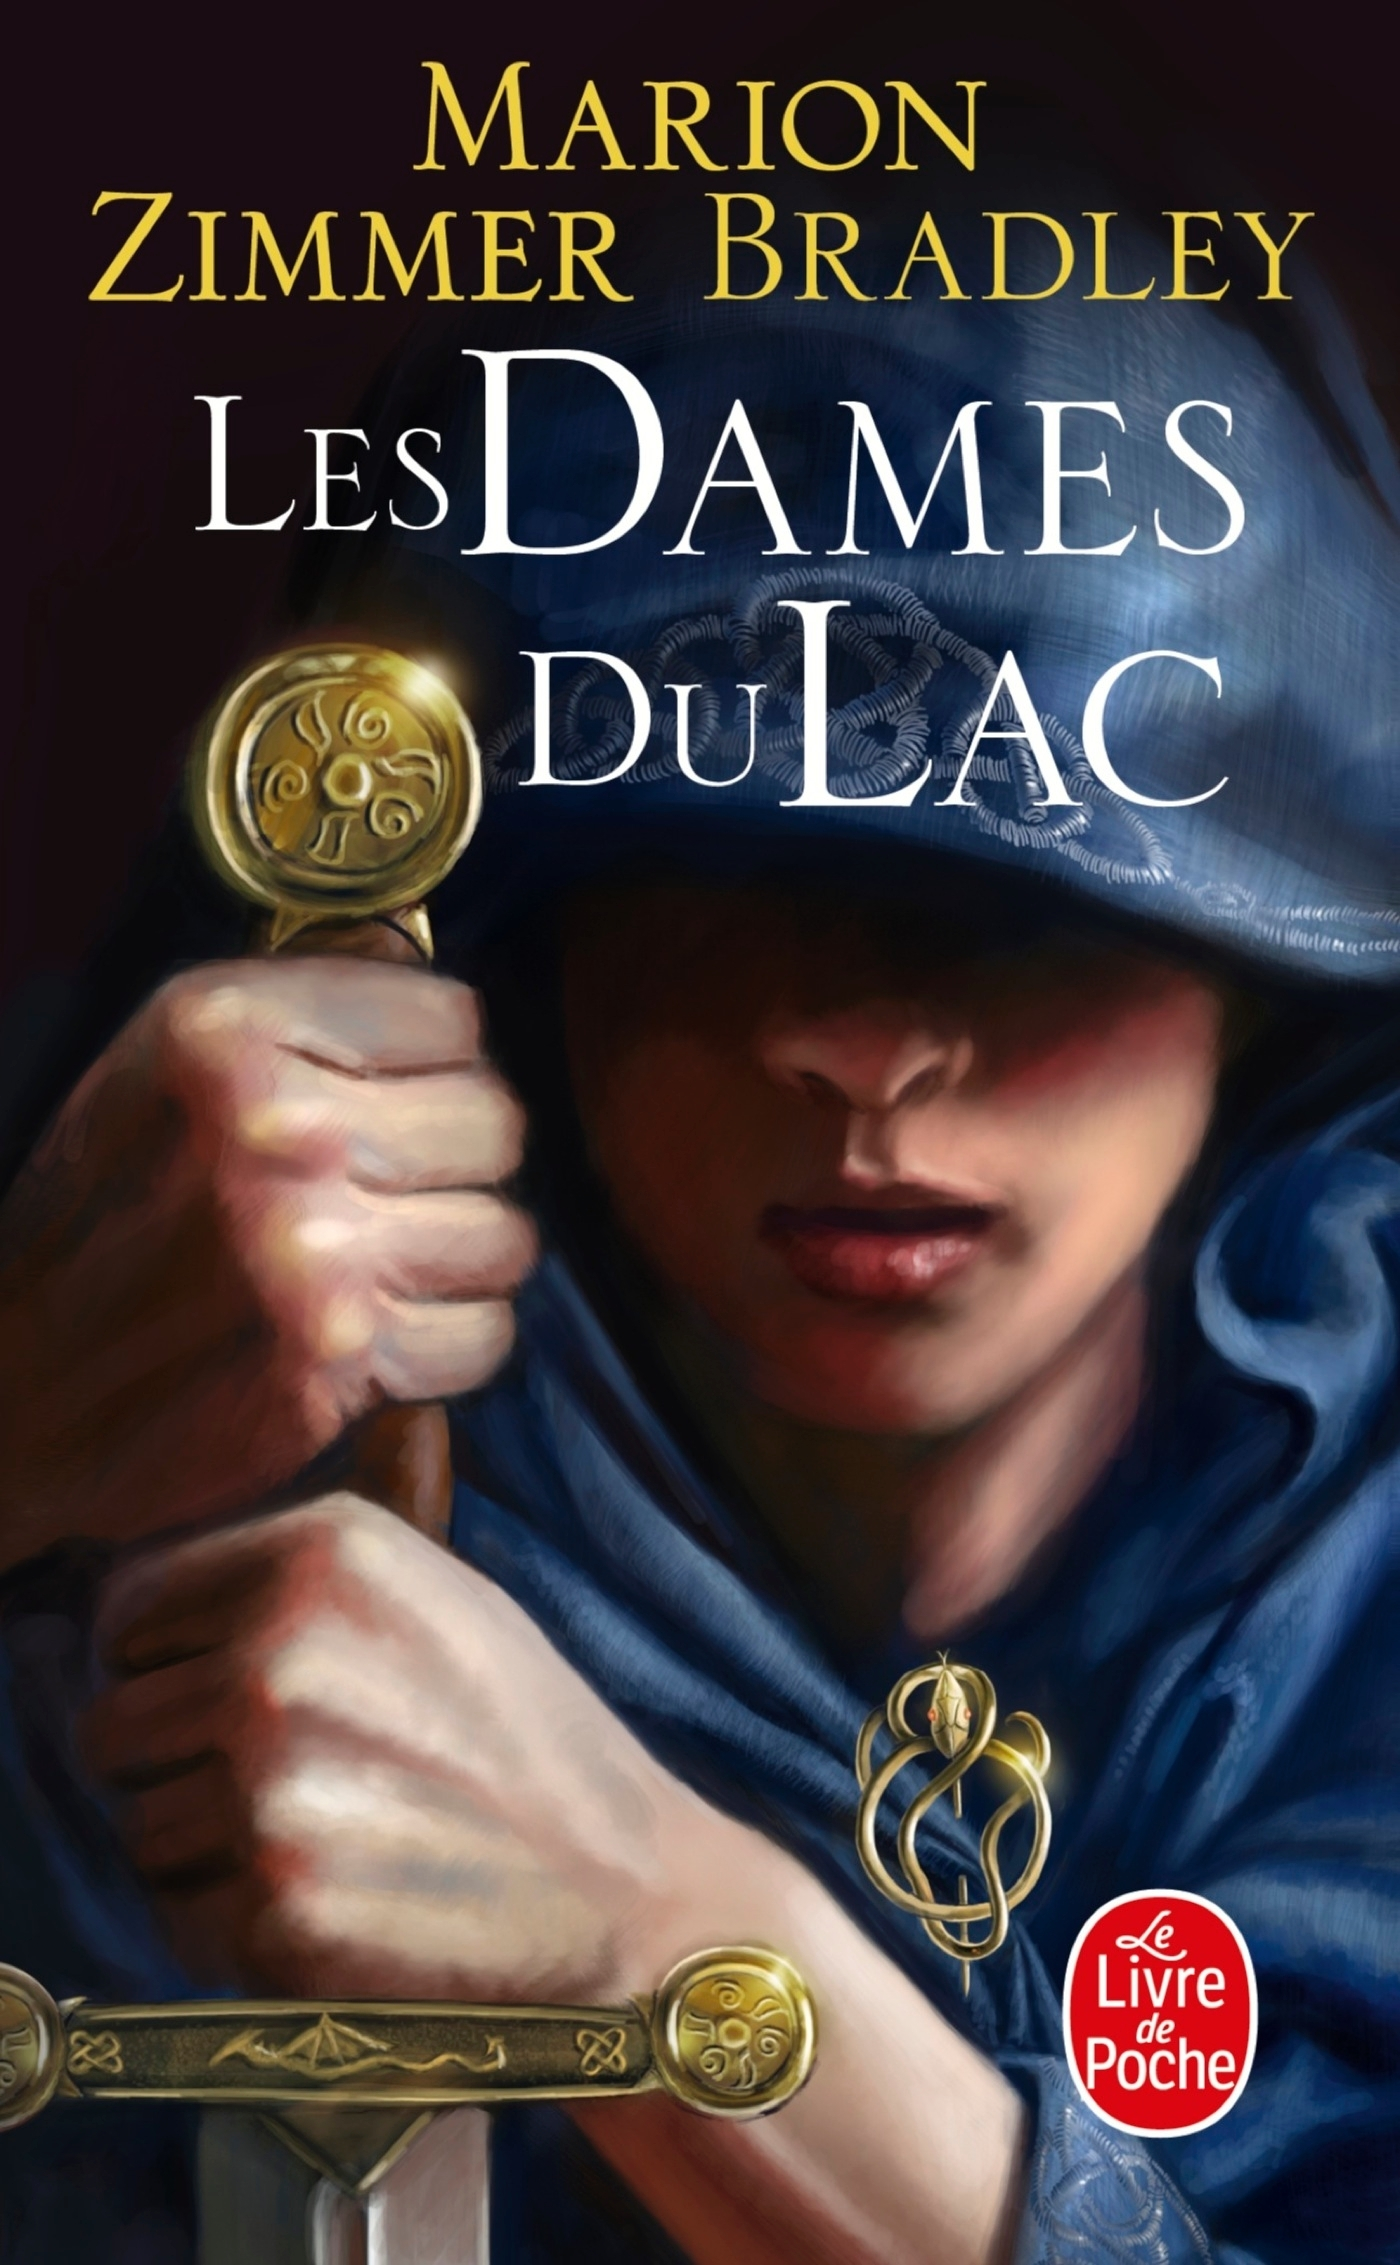 LES DAMES DU LAC (LE CYCLE D'AVALON, TOME 1)